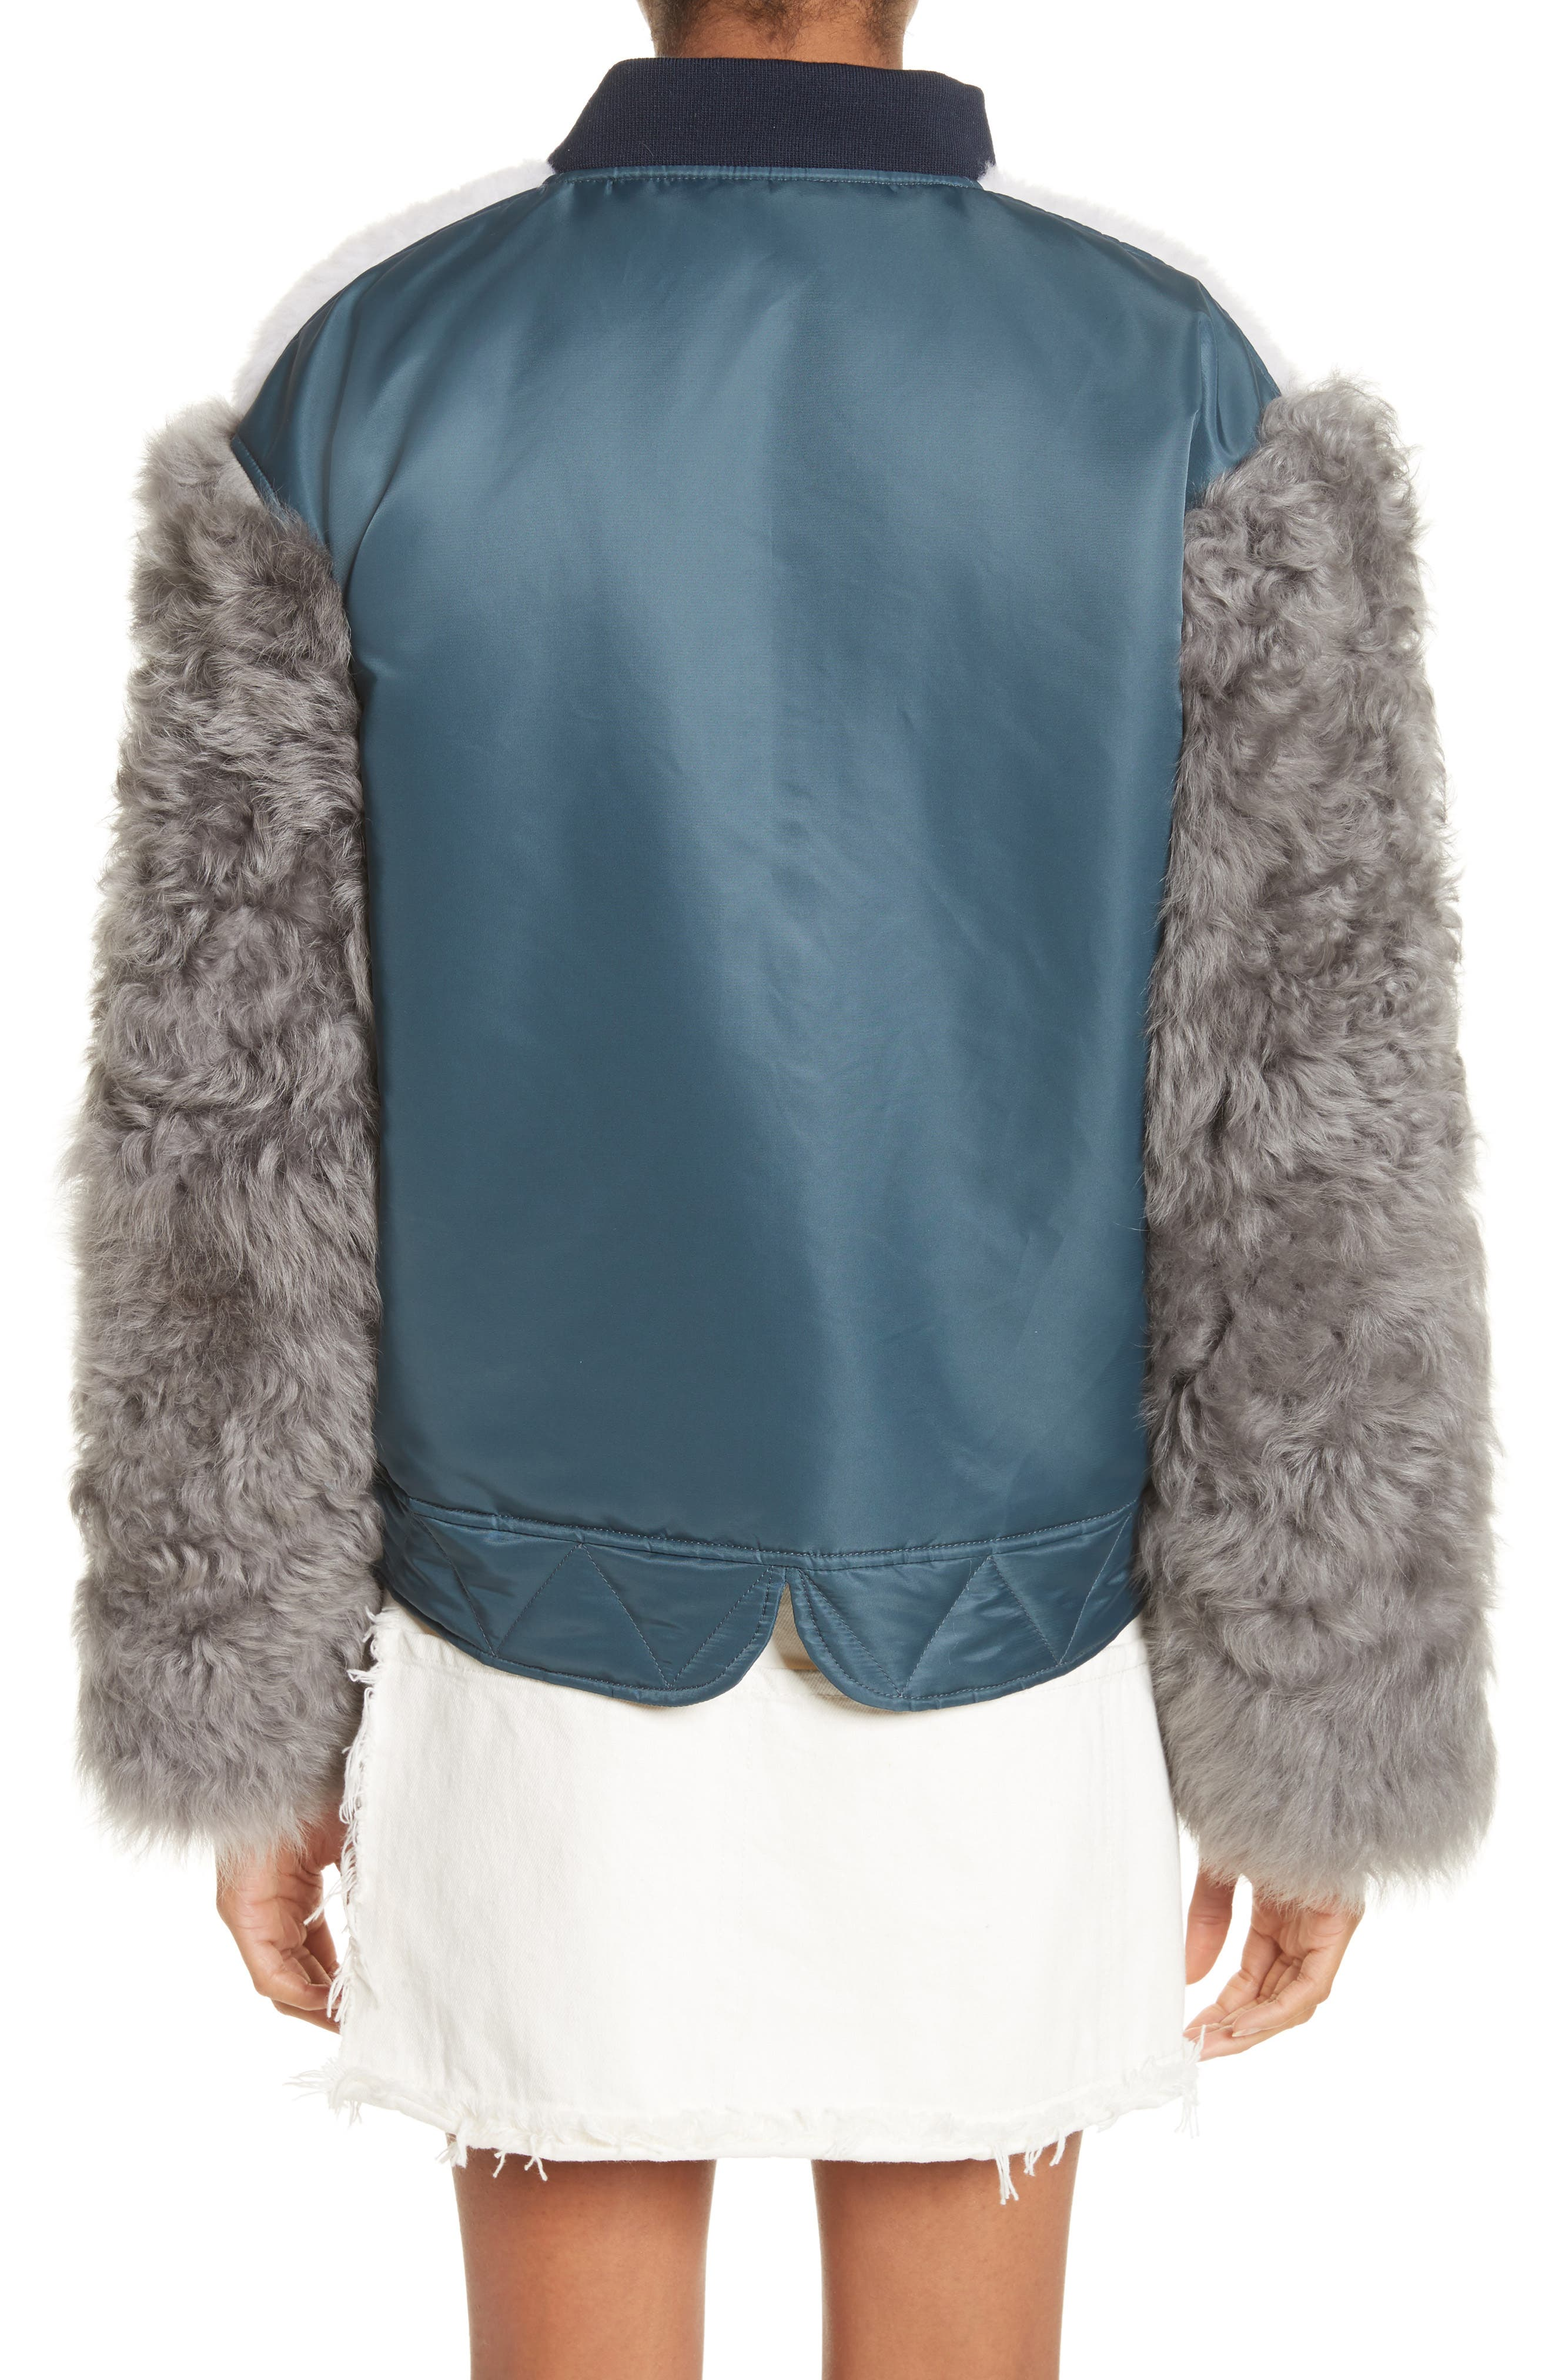 Peter Genuine Shearling Sleeve Jacket,                             Alternate thumbnail 2, color,                             Navy